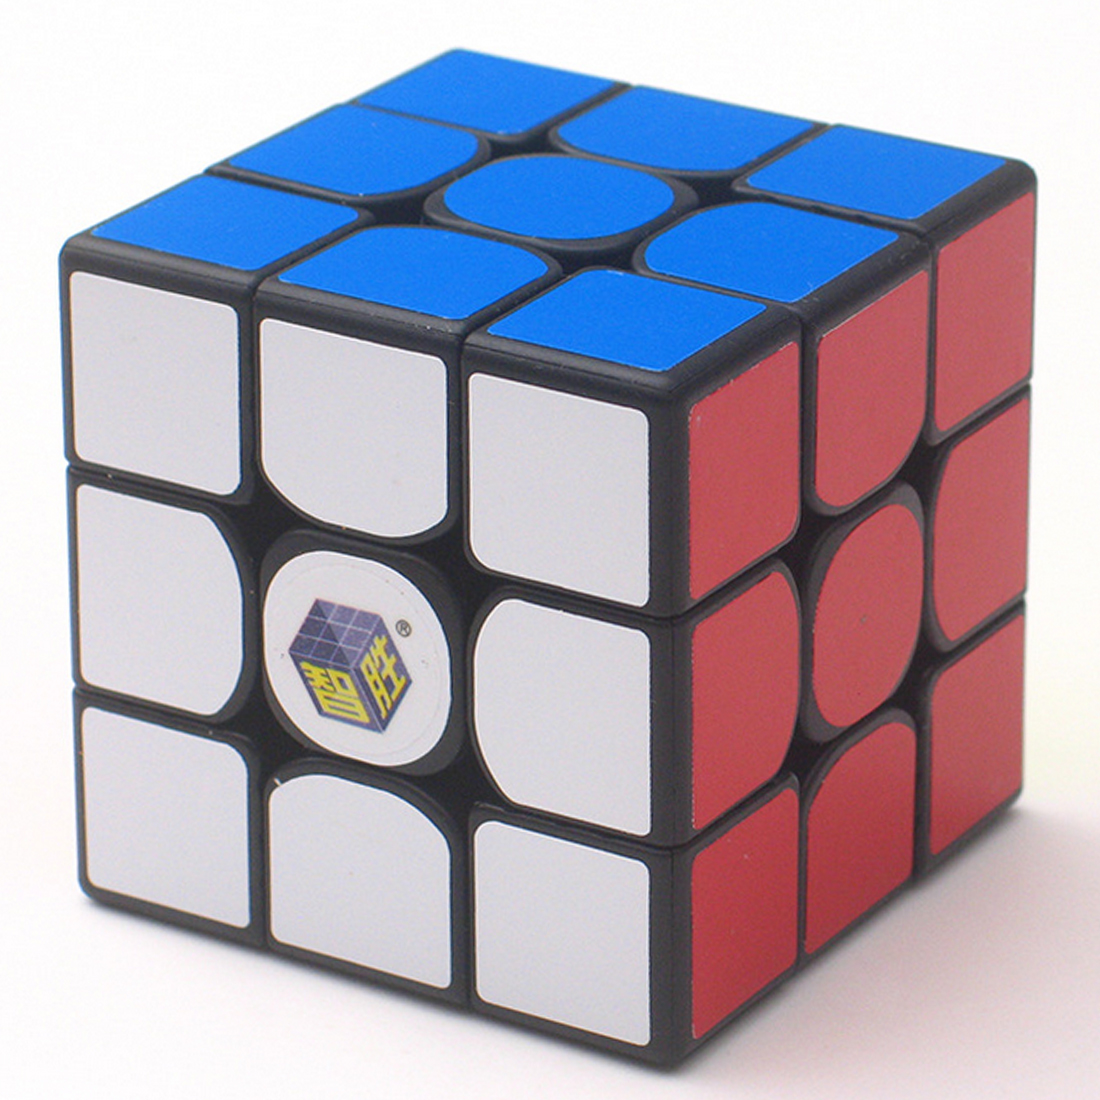 13abfbac88 Yuxin Little Magic Professional Speed Magic Cube 3x3x3 Educational Learning  Puzzle Cube Toy Magic Cubo Magico For Challenging